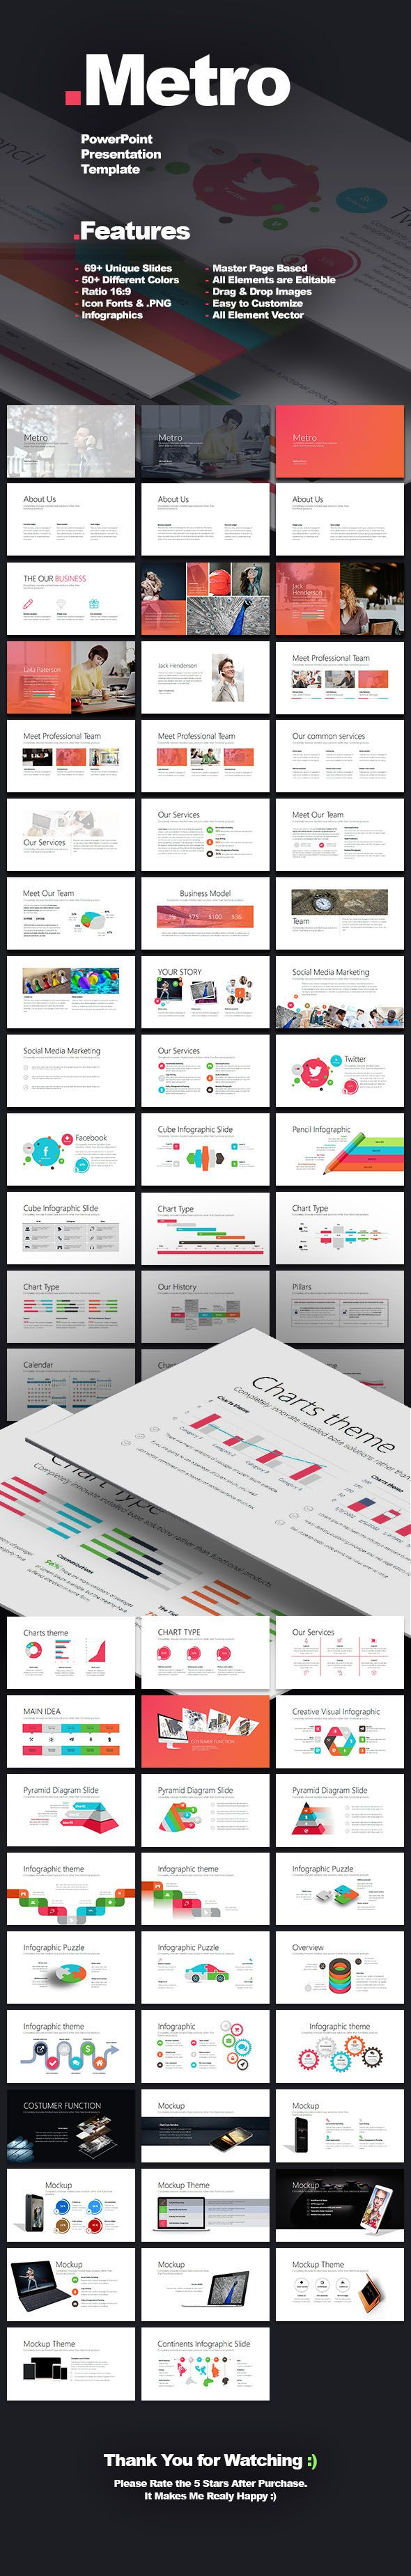 727 best Powerpoint Template images on Pinterest | Power point ...